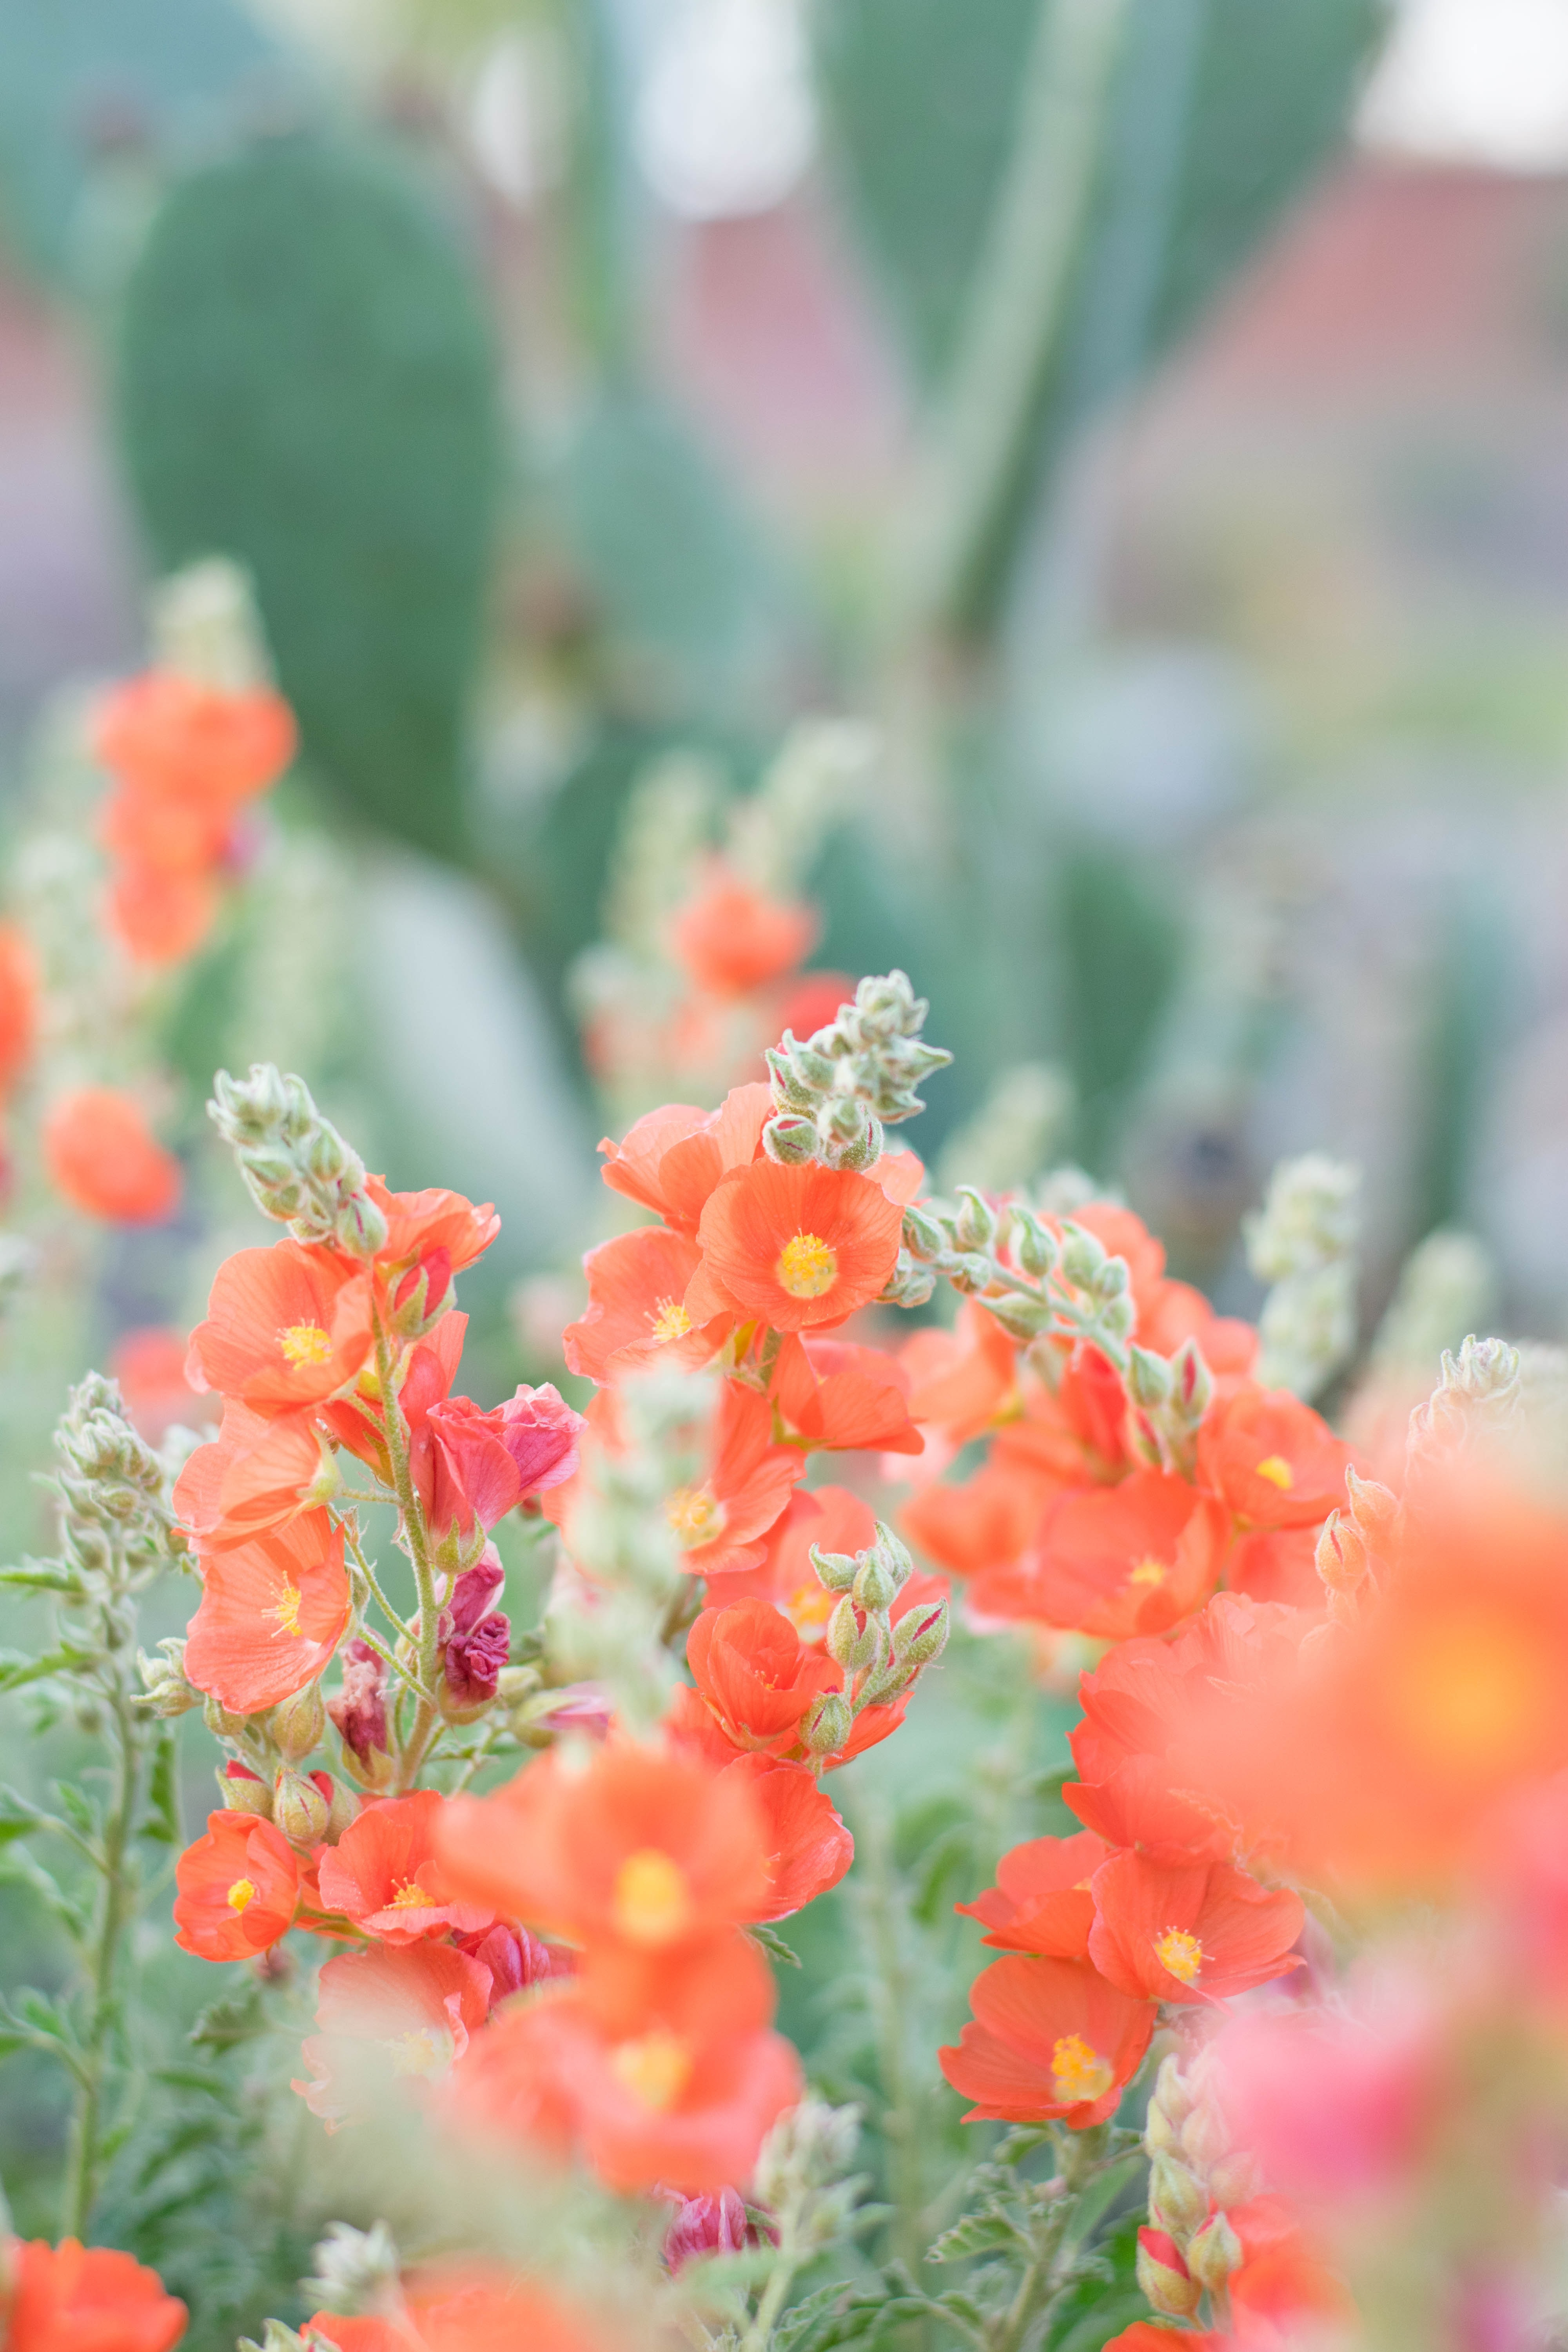 selective focus photography of orange petaled flower